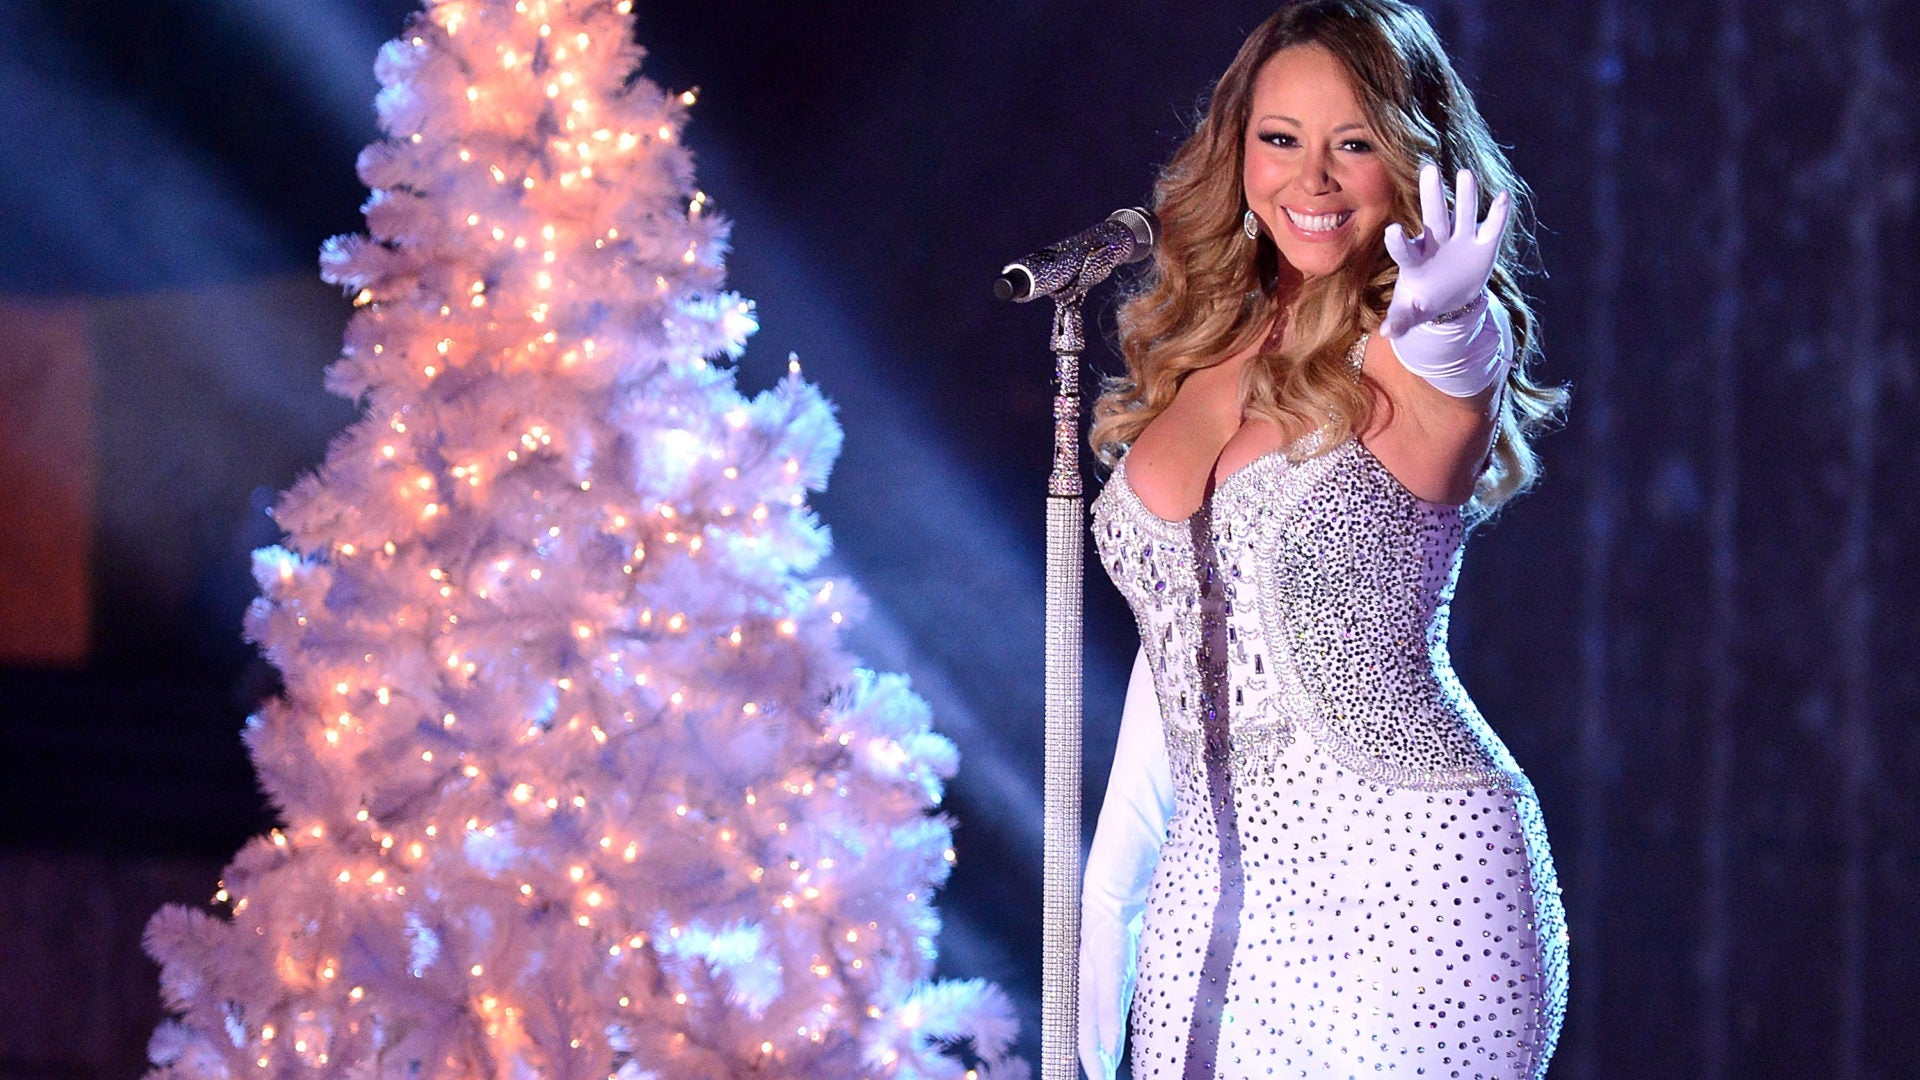 Halloween just ended. Mariah Carey says 'It's time' for Christmas